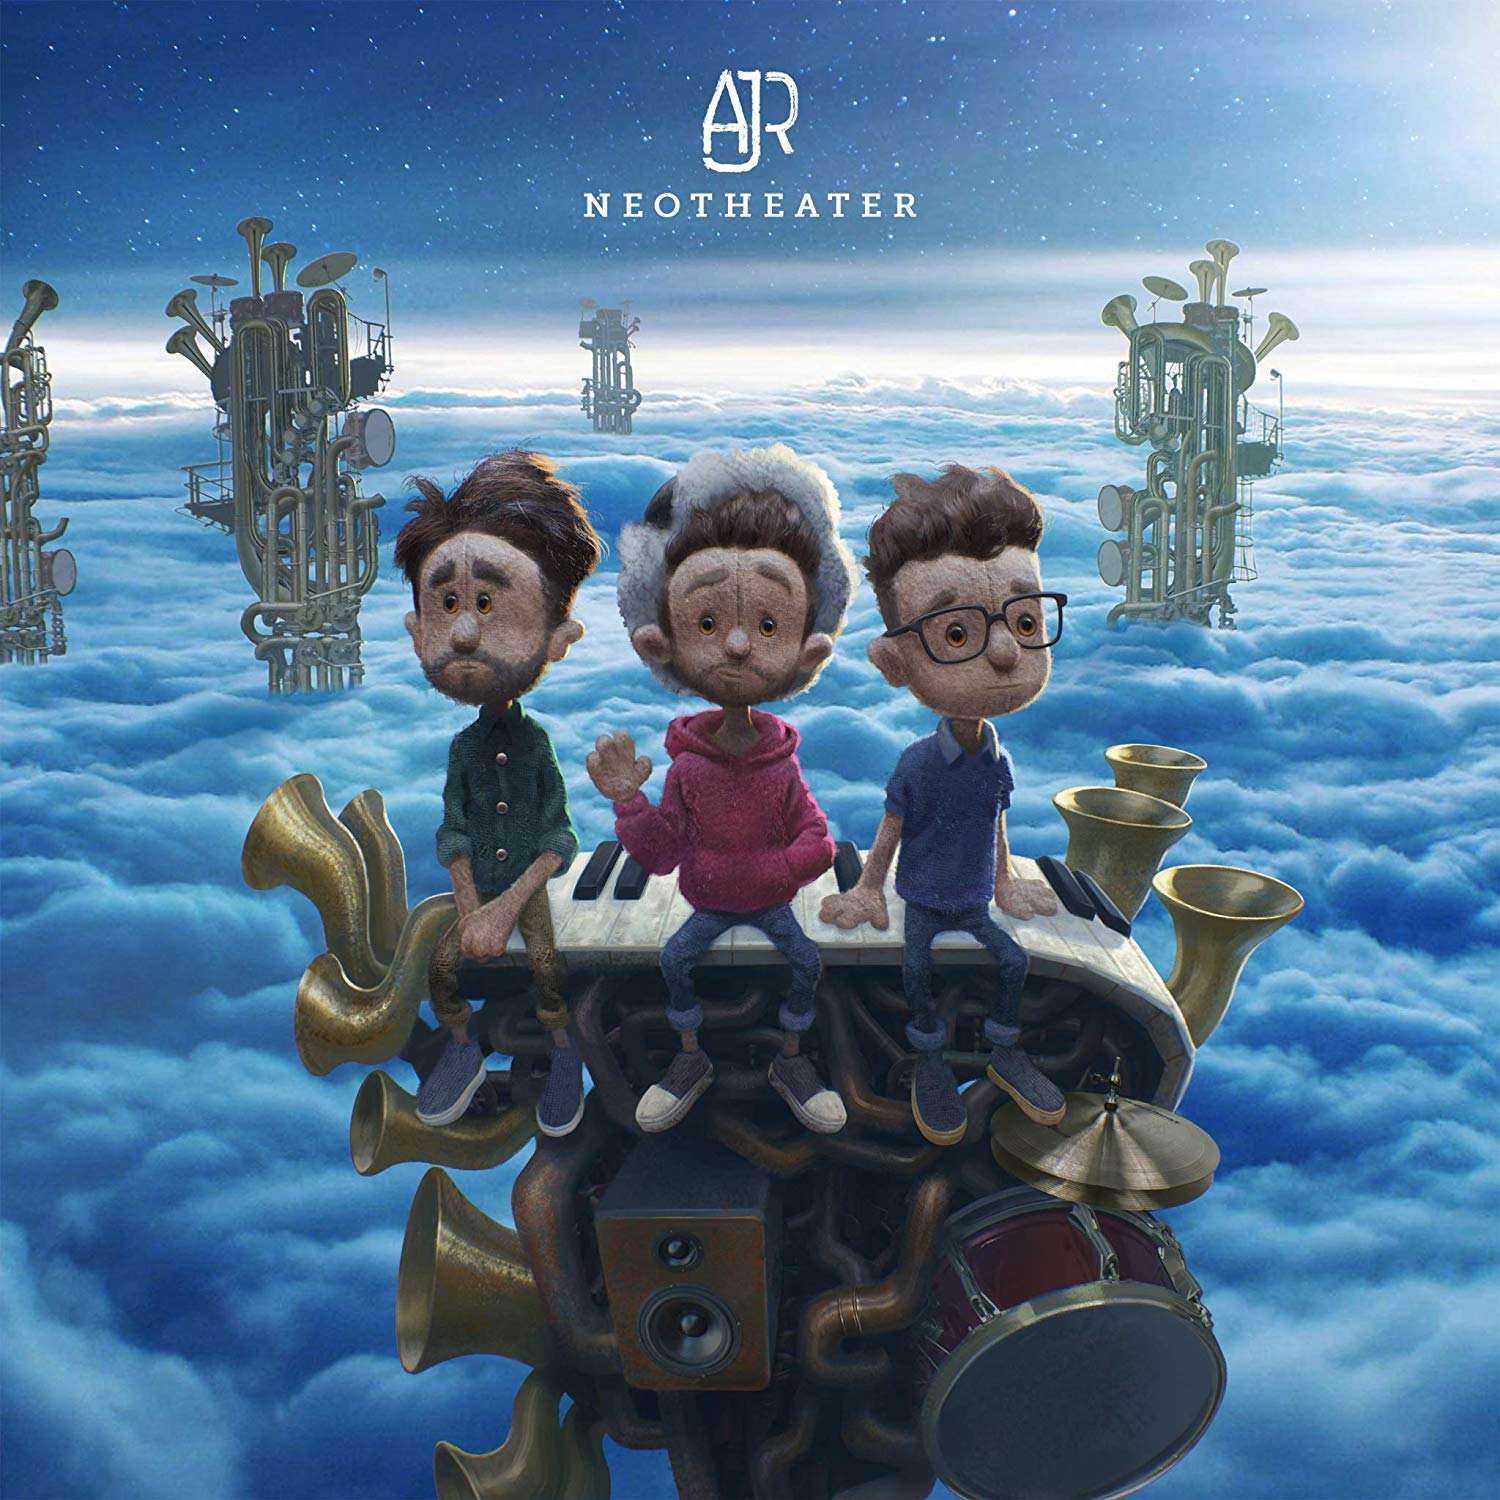 AJR - Neotheater [Indie Exclusive Limited Edition LP]